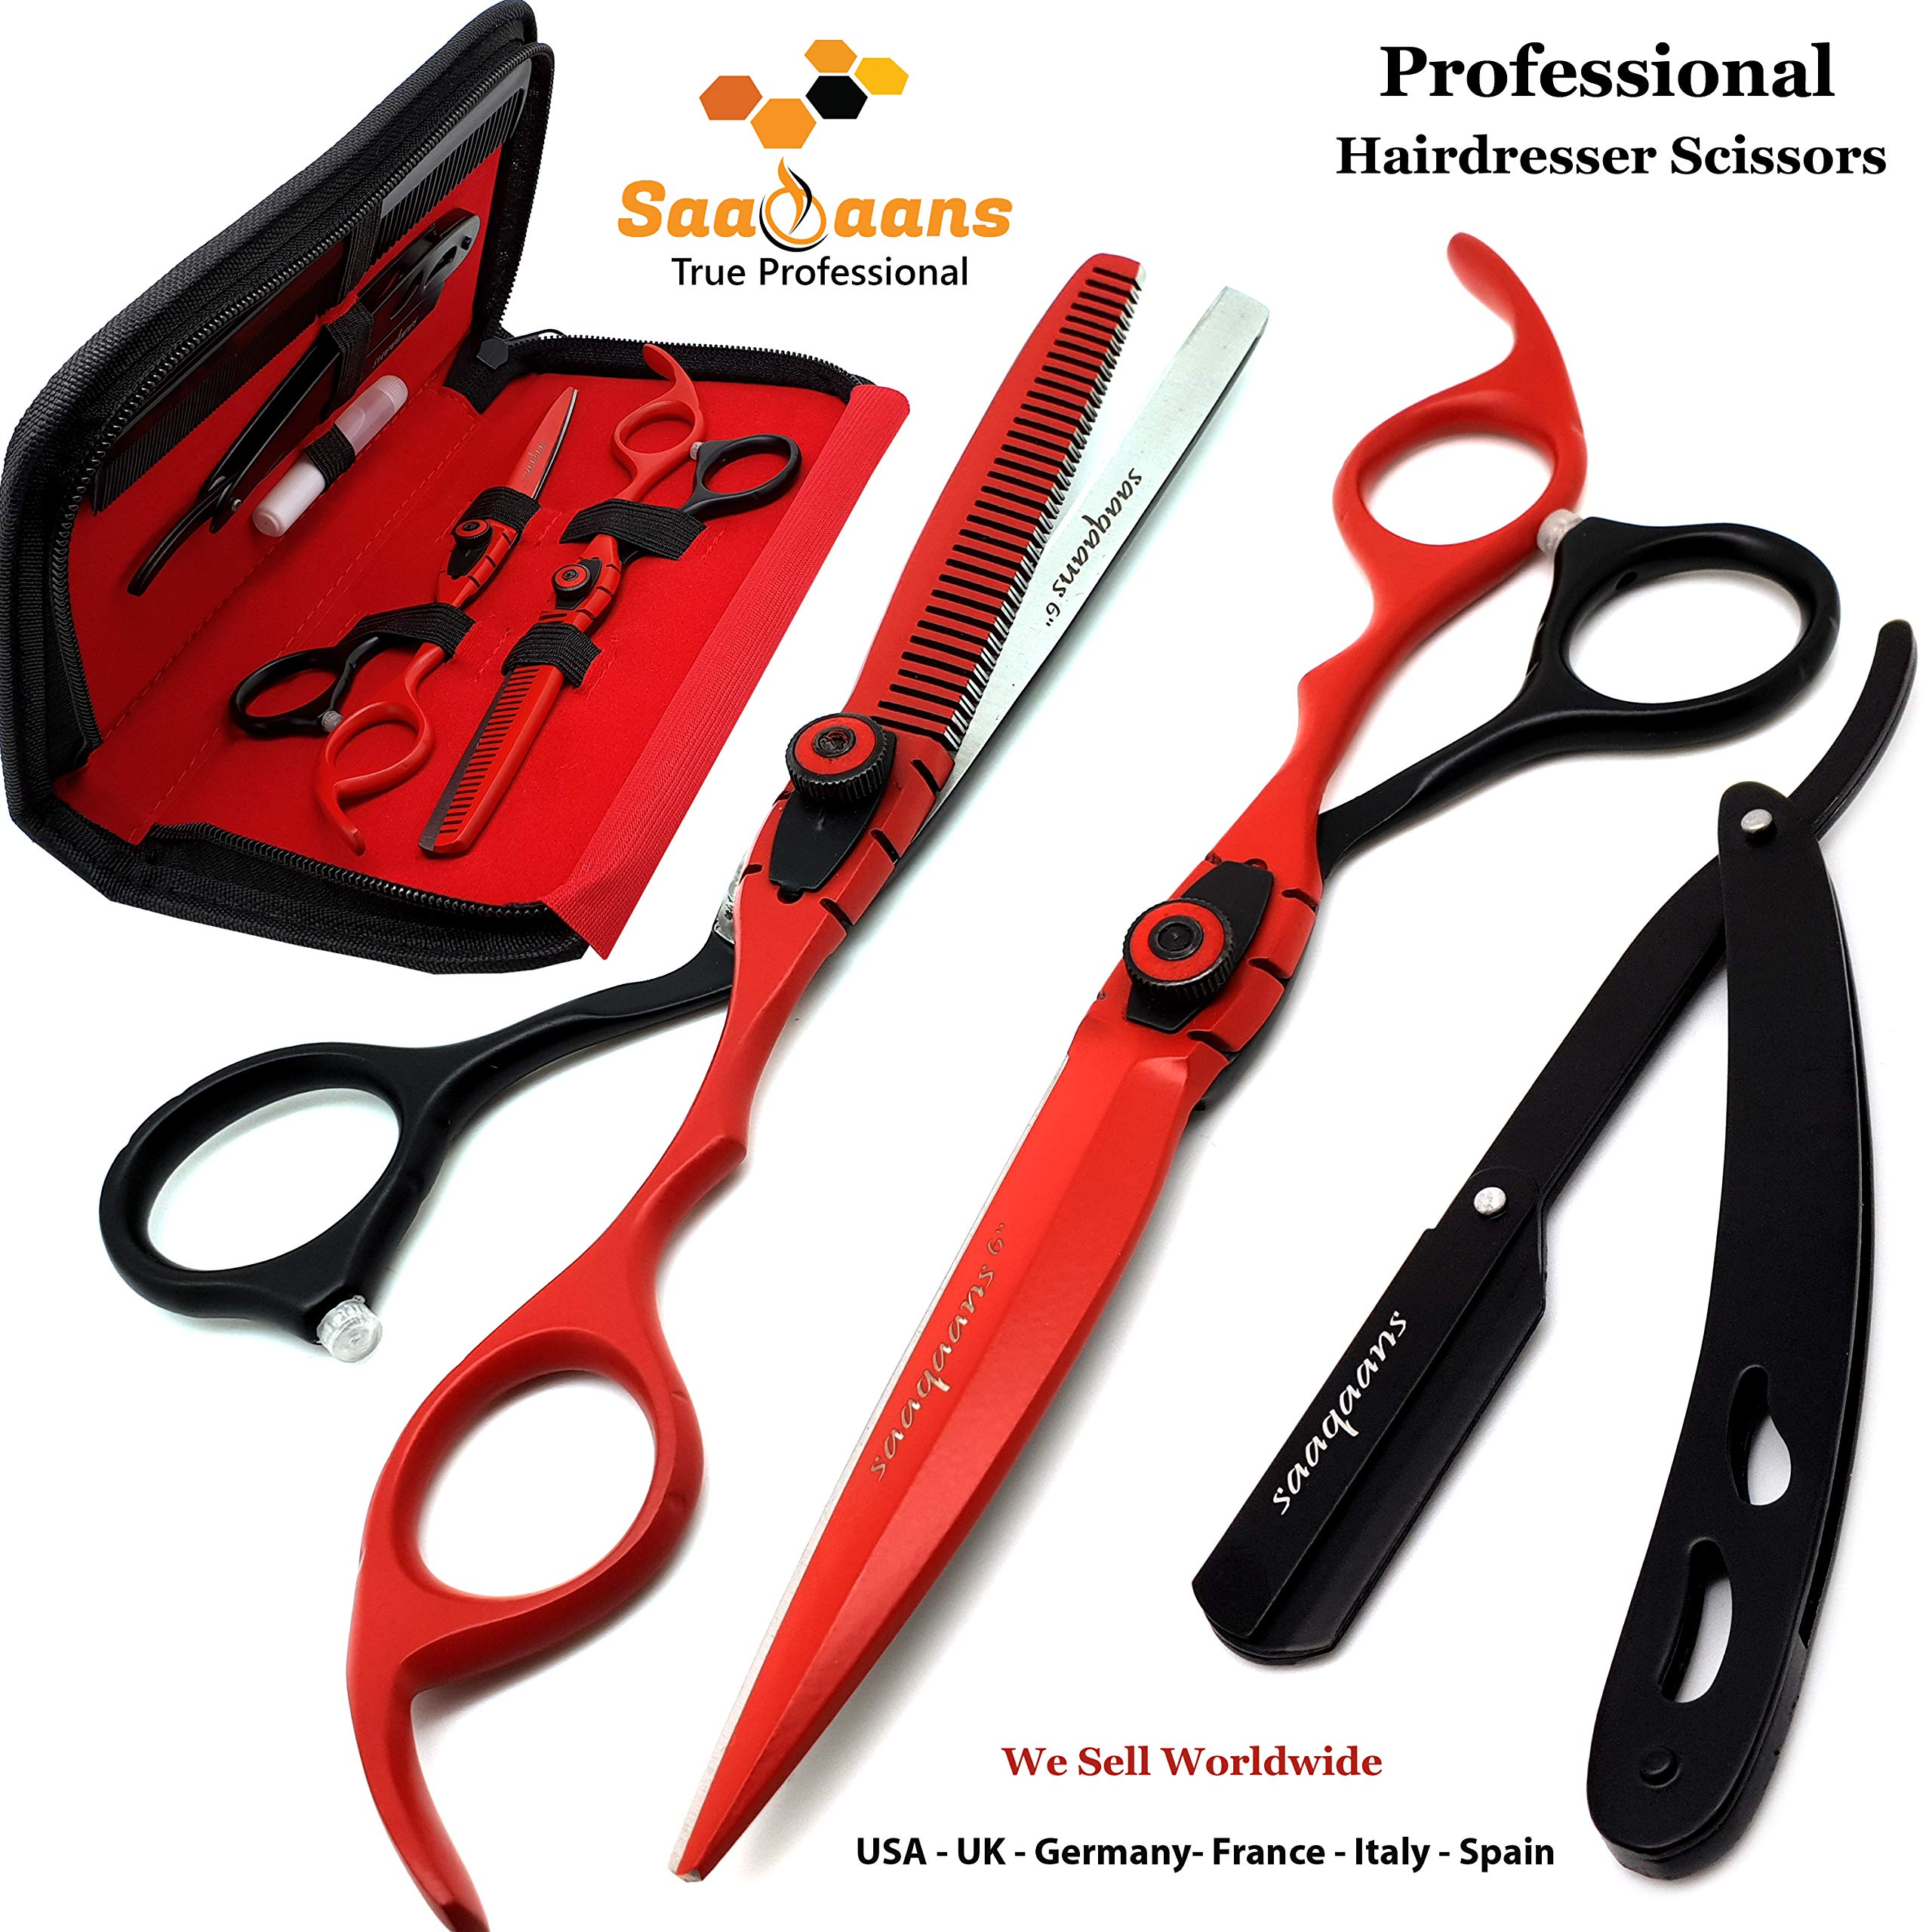 Saaqaans MSS-04 Professional Barber Scissors Set - Package includes Haircut Scissor, Thinning Shear, Straight Razor, 10 x Derby Double Edge Blades & Hair Comb in Stylish Scissor Case (Red & Black USA) by Saaqaans